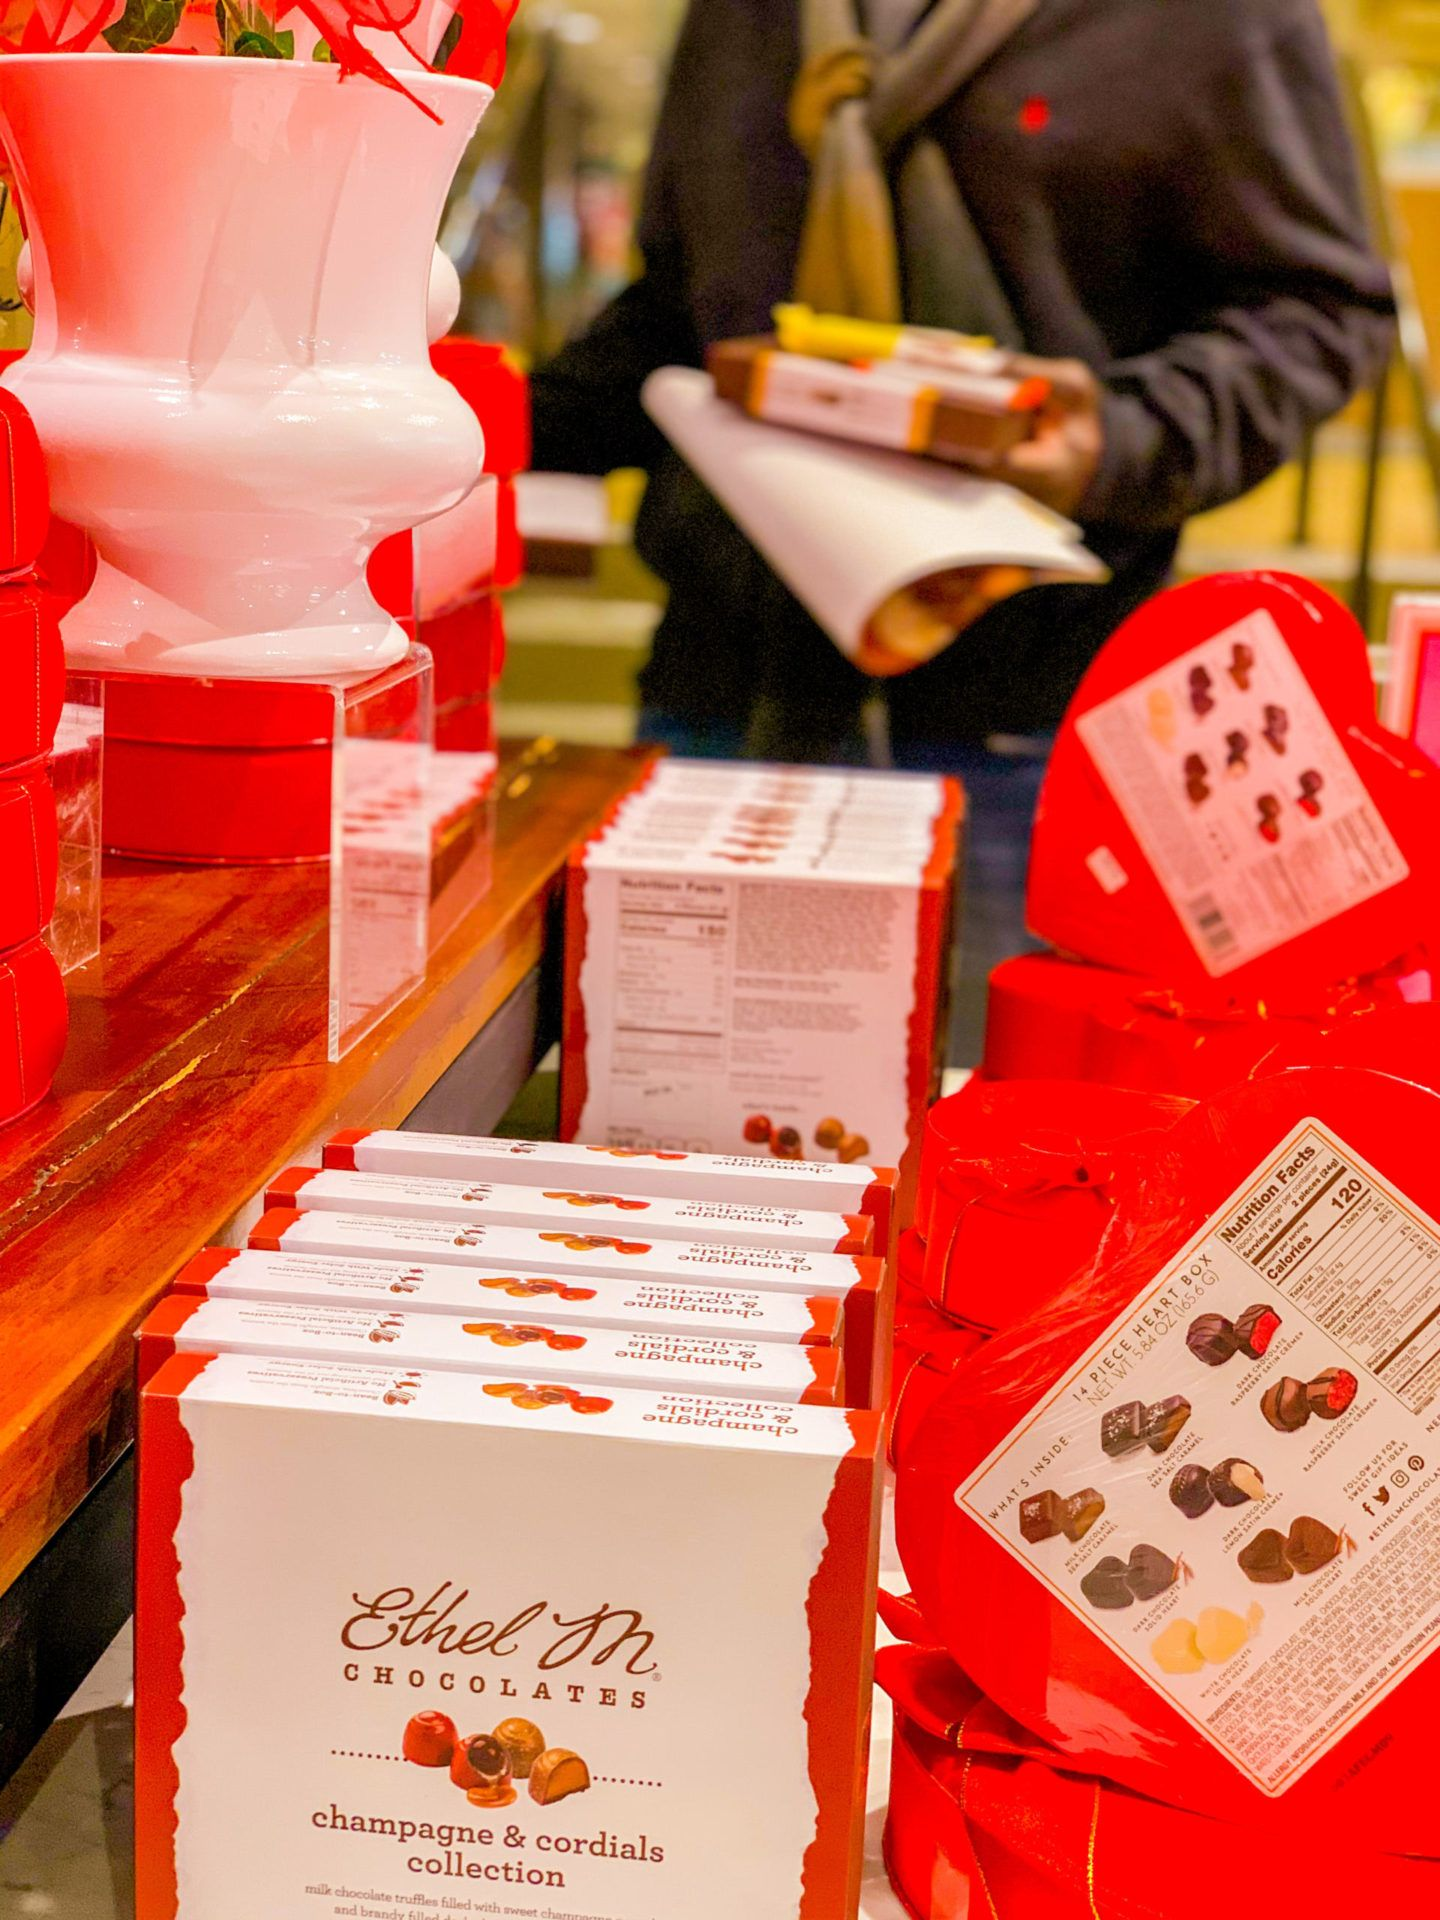 Ethel M Chocolates Champagne Cordials Collection In 2020 Chocolate Factory Premium Chocolate Online Chocolate